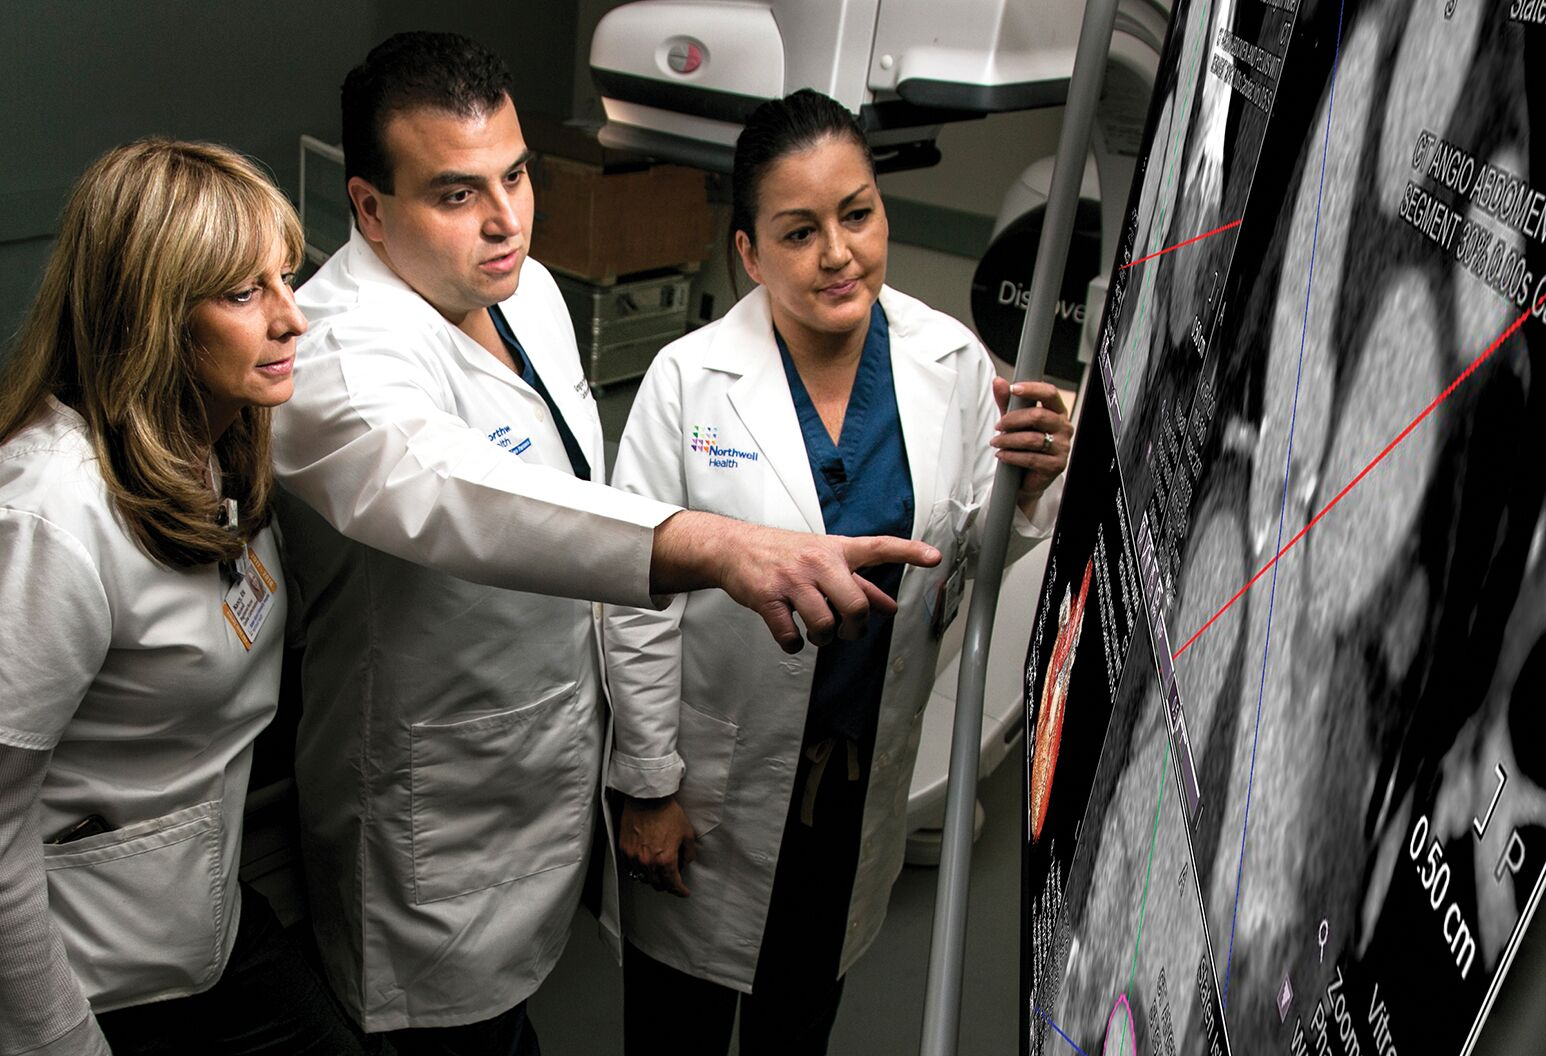 Dr. Gregory Maniatis (center) and members of the TAVR team review a case.